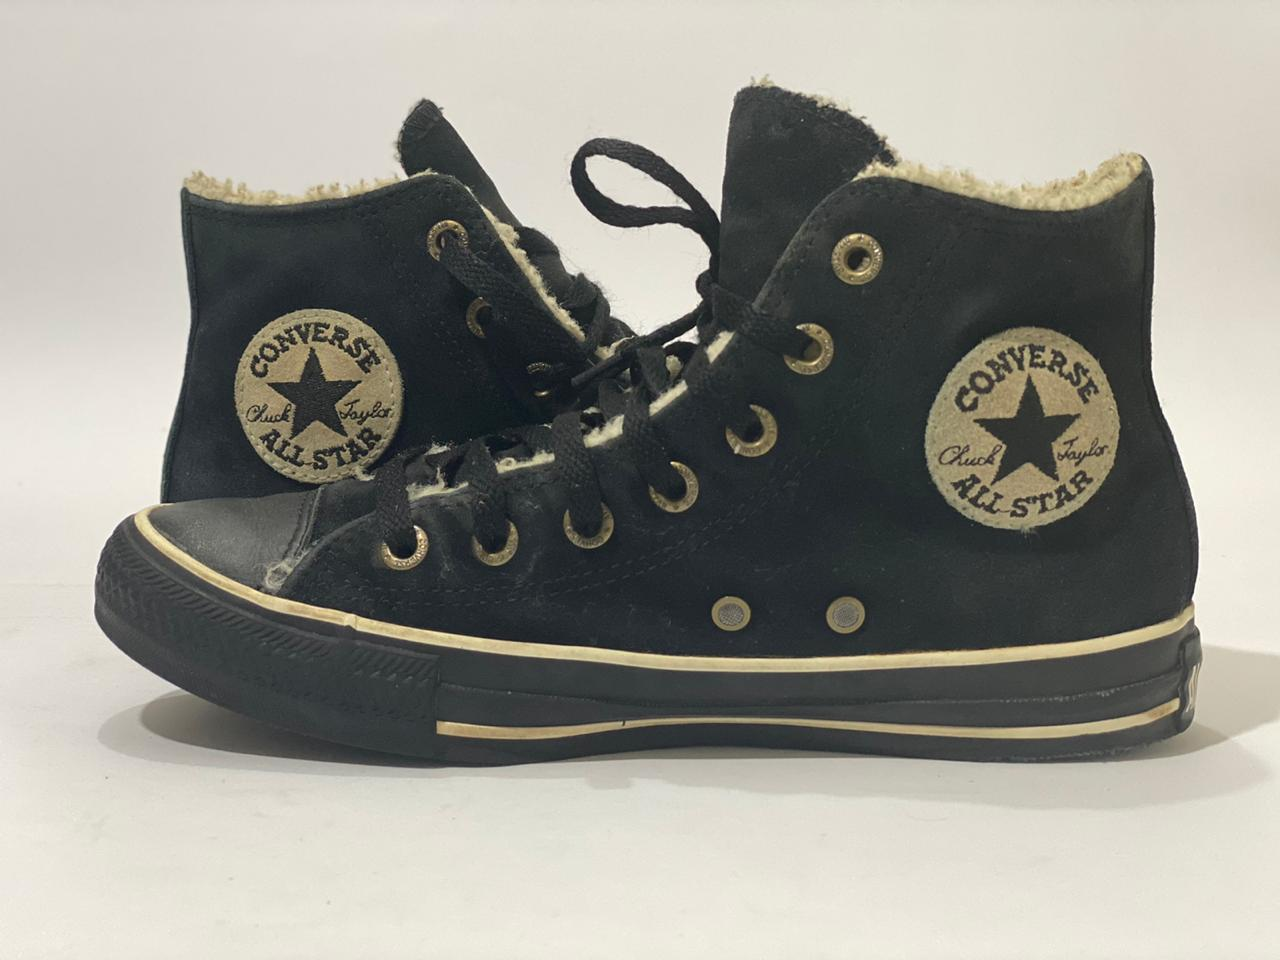 All Star Chuck Taylor Black Suede high Top, Size US#6.5 UK#6.5, PAK# 39